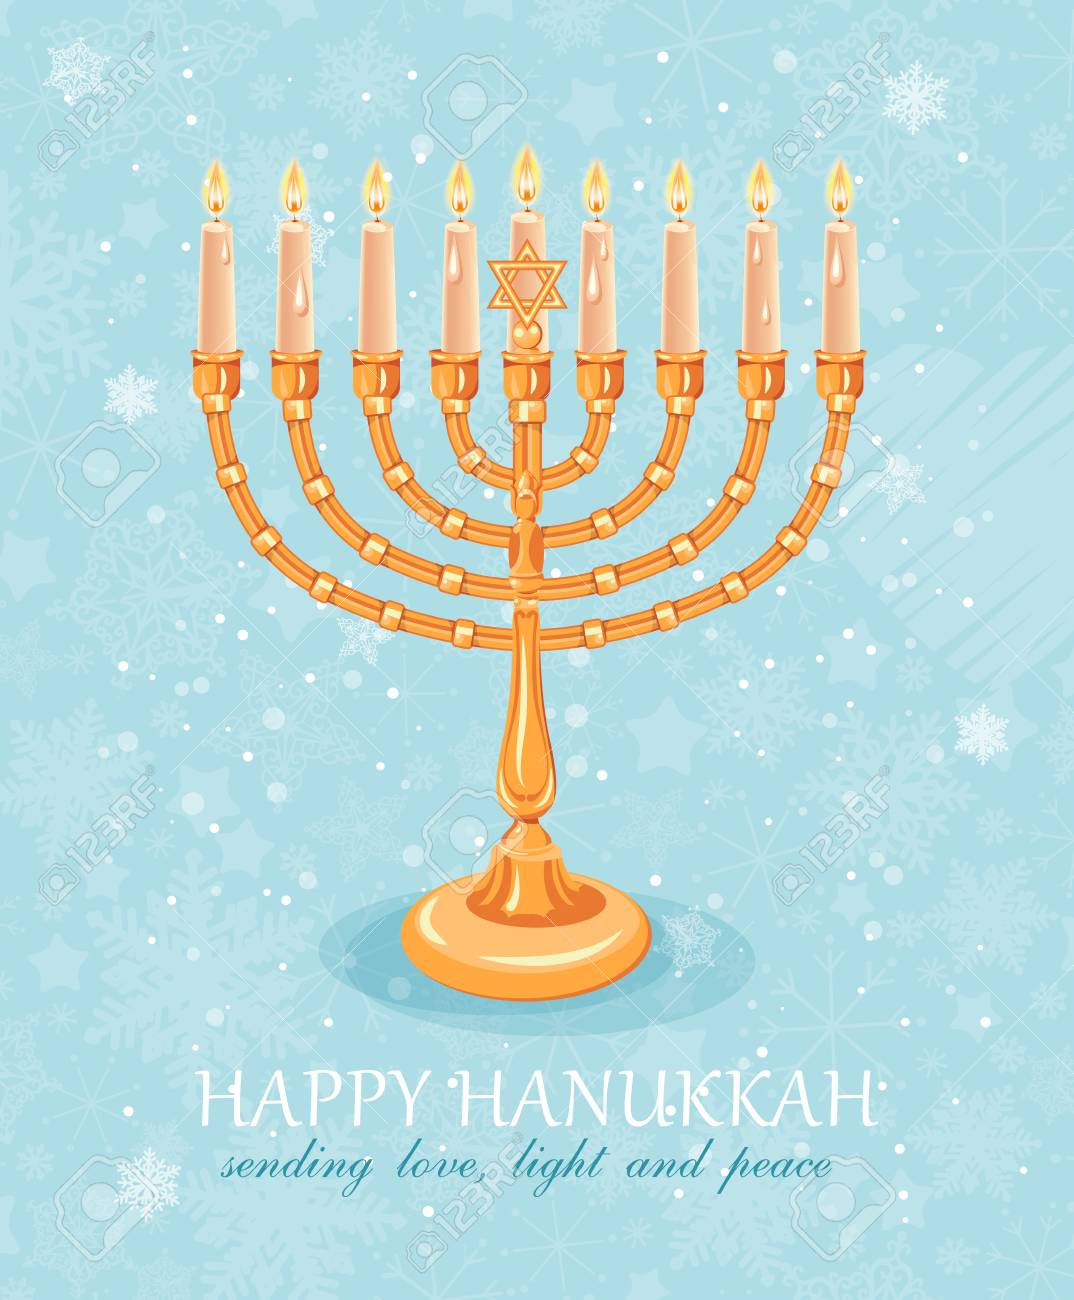 Happy hanukkah greeting card design jewish holiday vector happy hanukkah greeting card design jewish holiday vector illustration stock vector 48707966 m4hsunfo